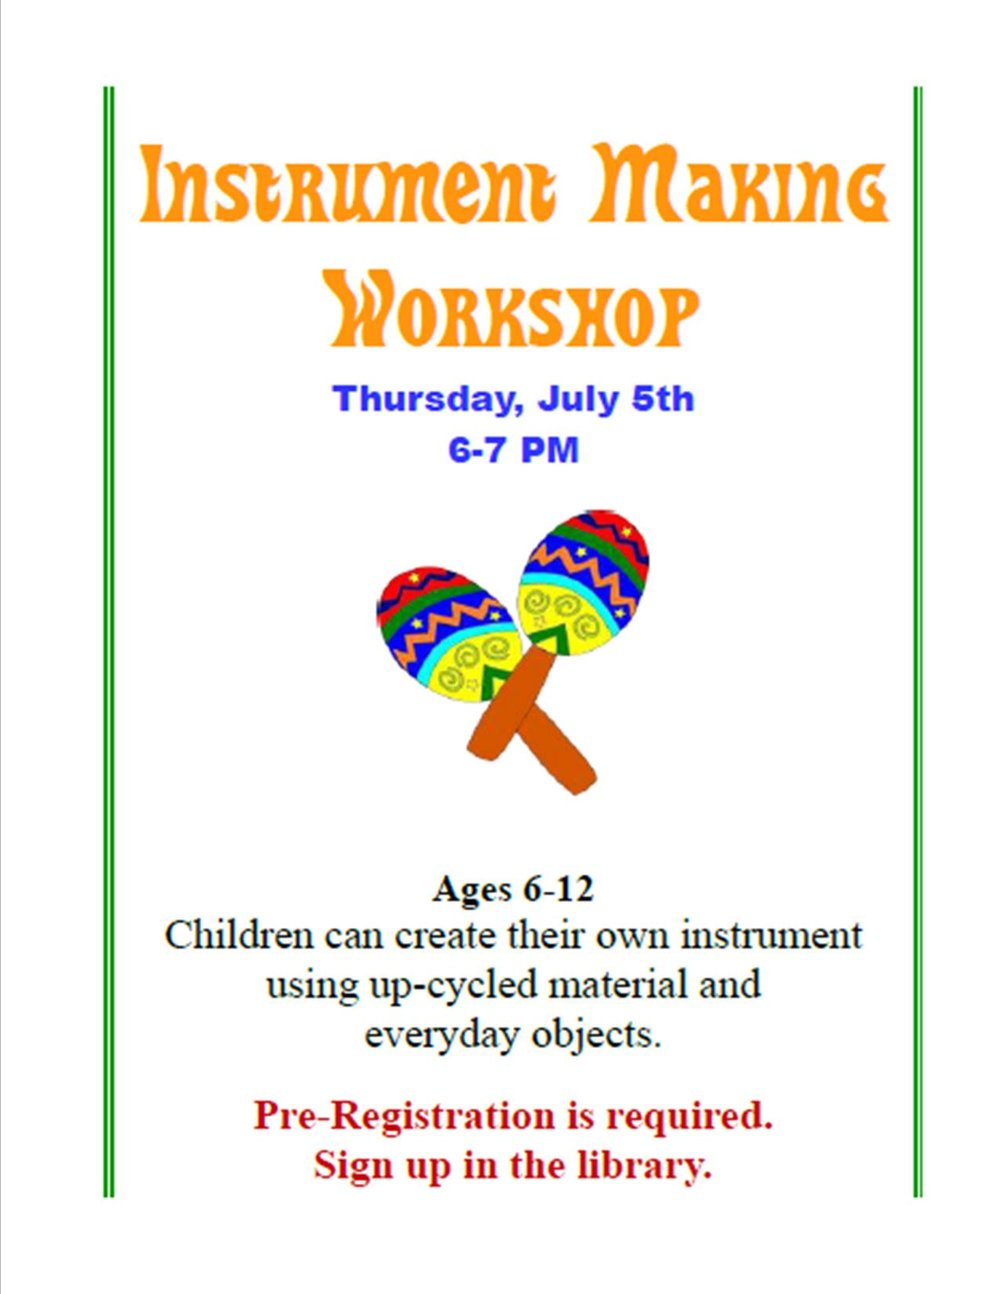 Instrument Making Workshop.jpg